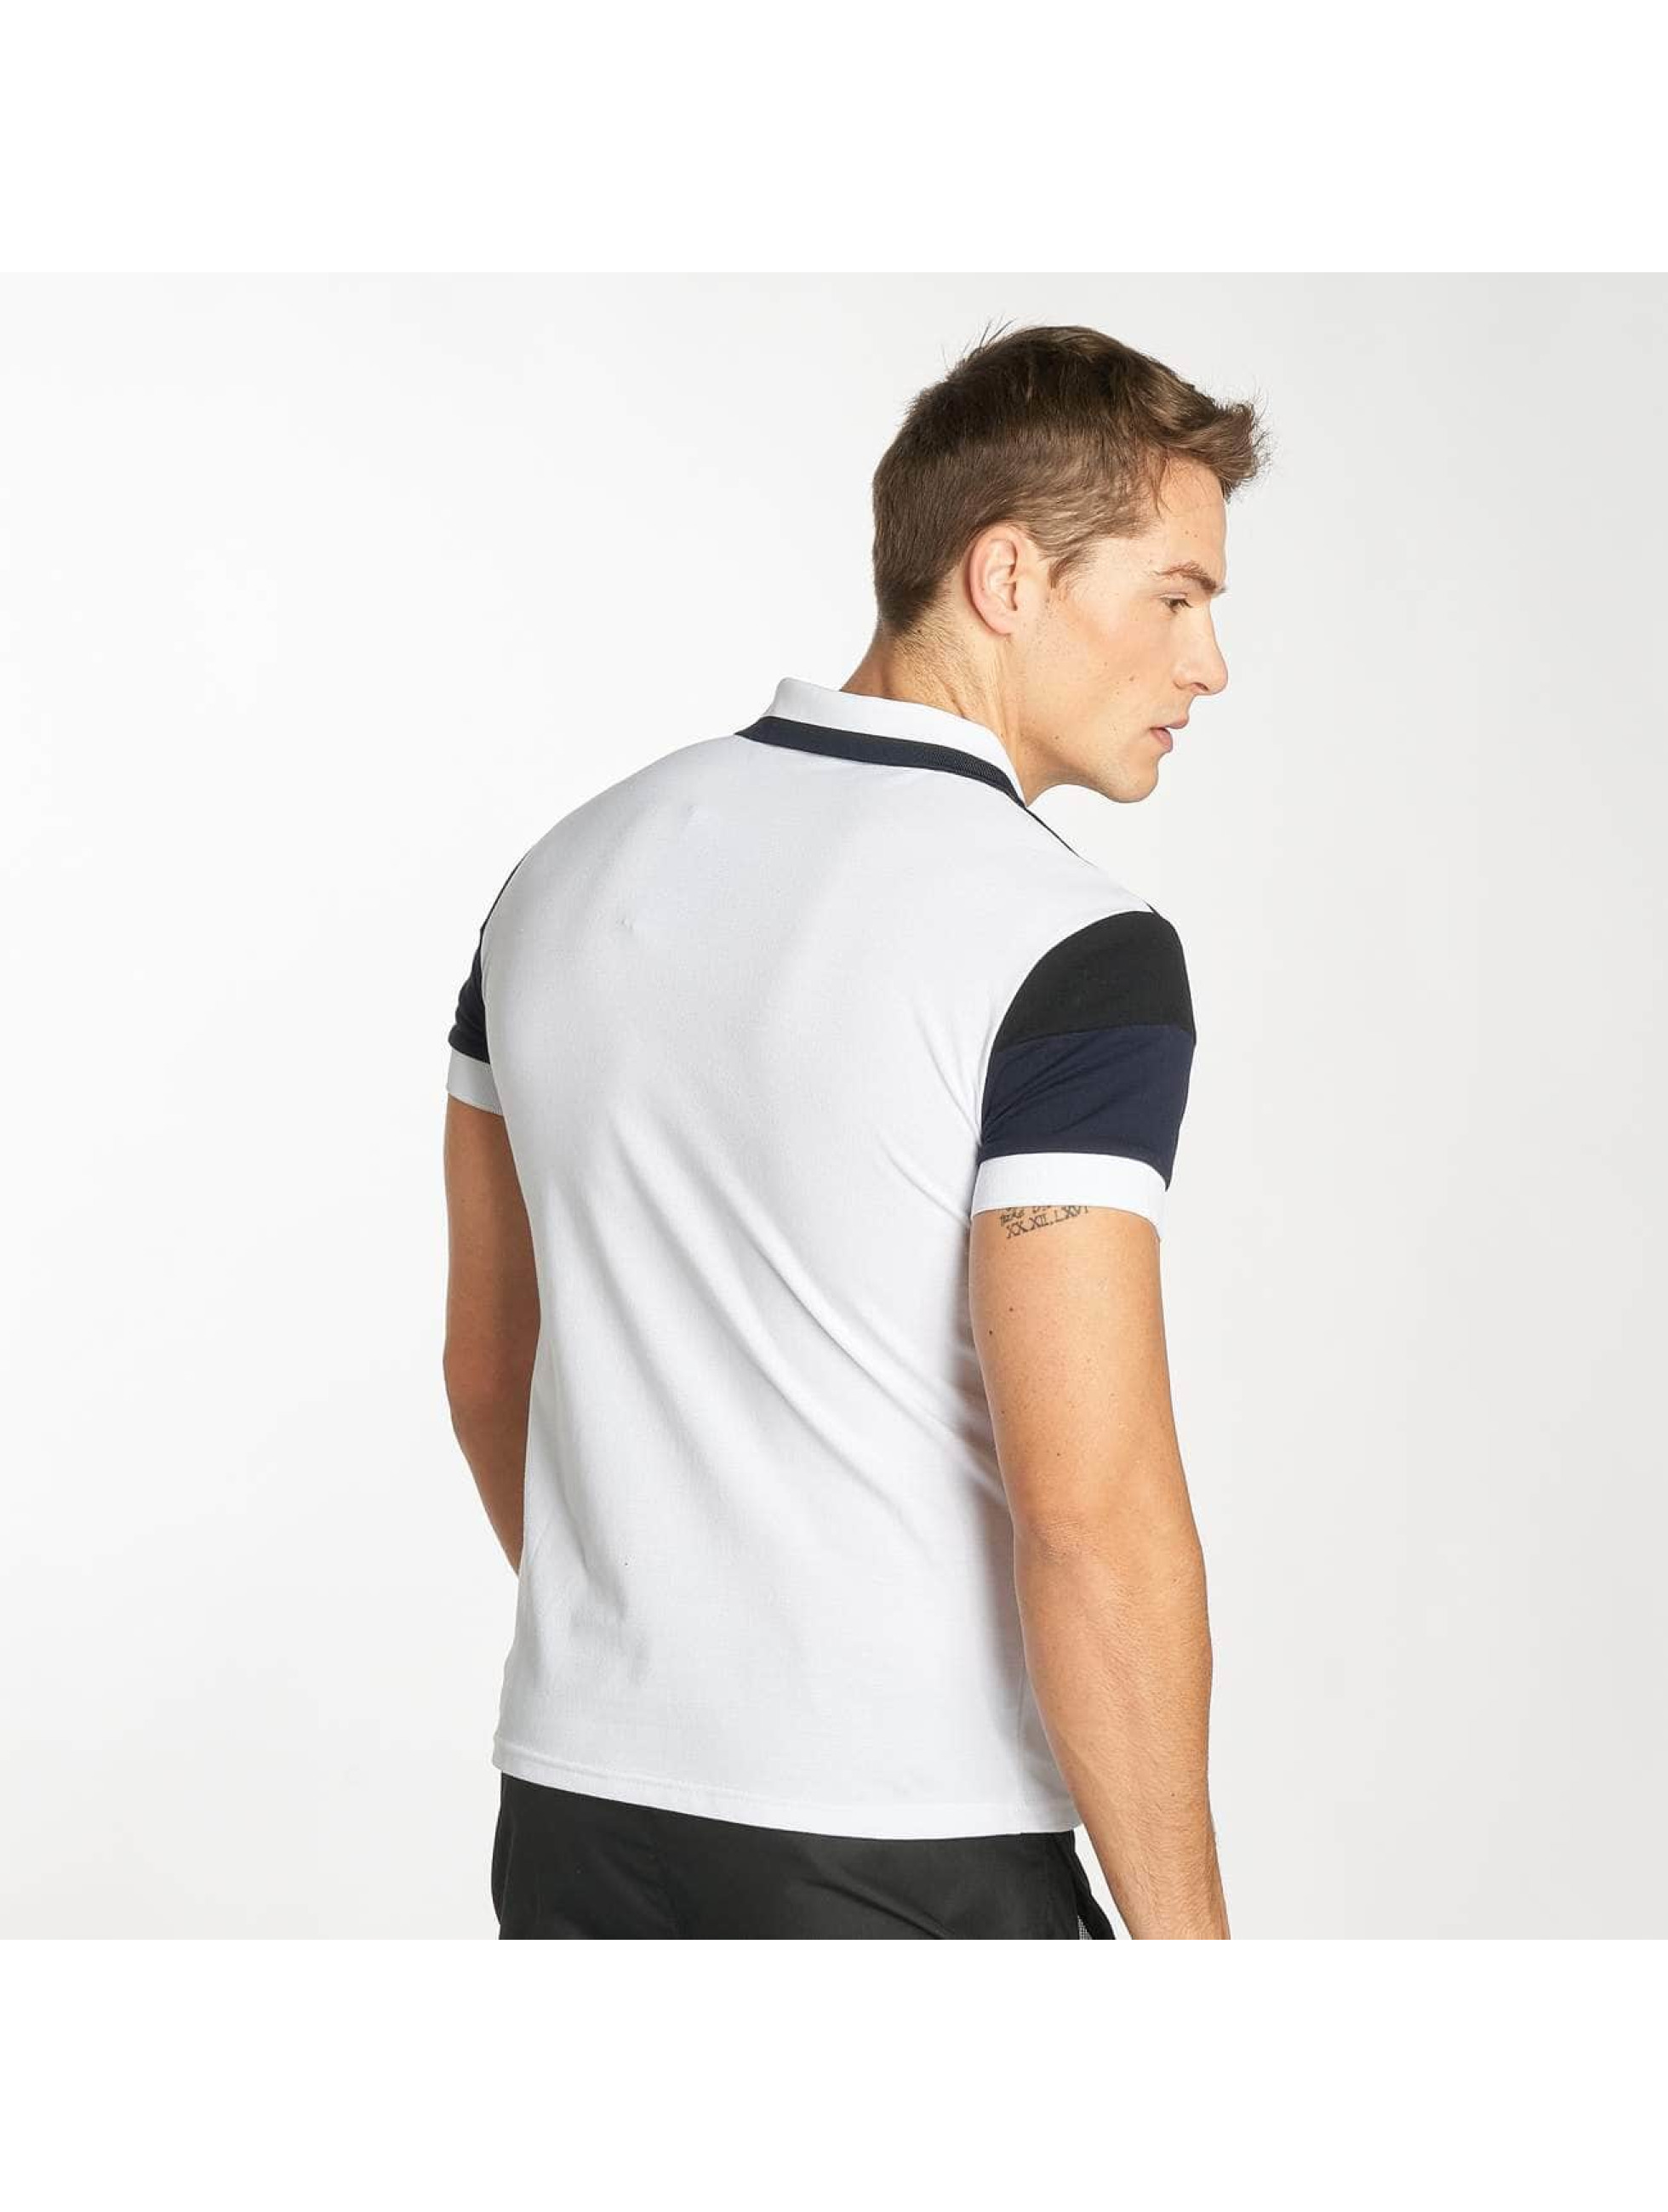 Zayne Paris Camiseta polo Stripe blanco